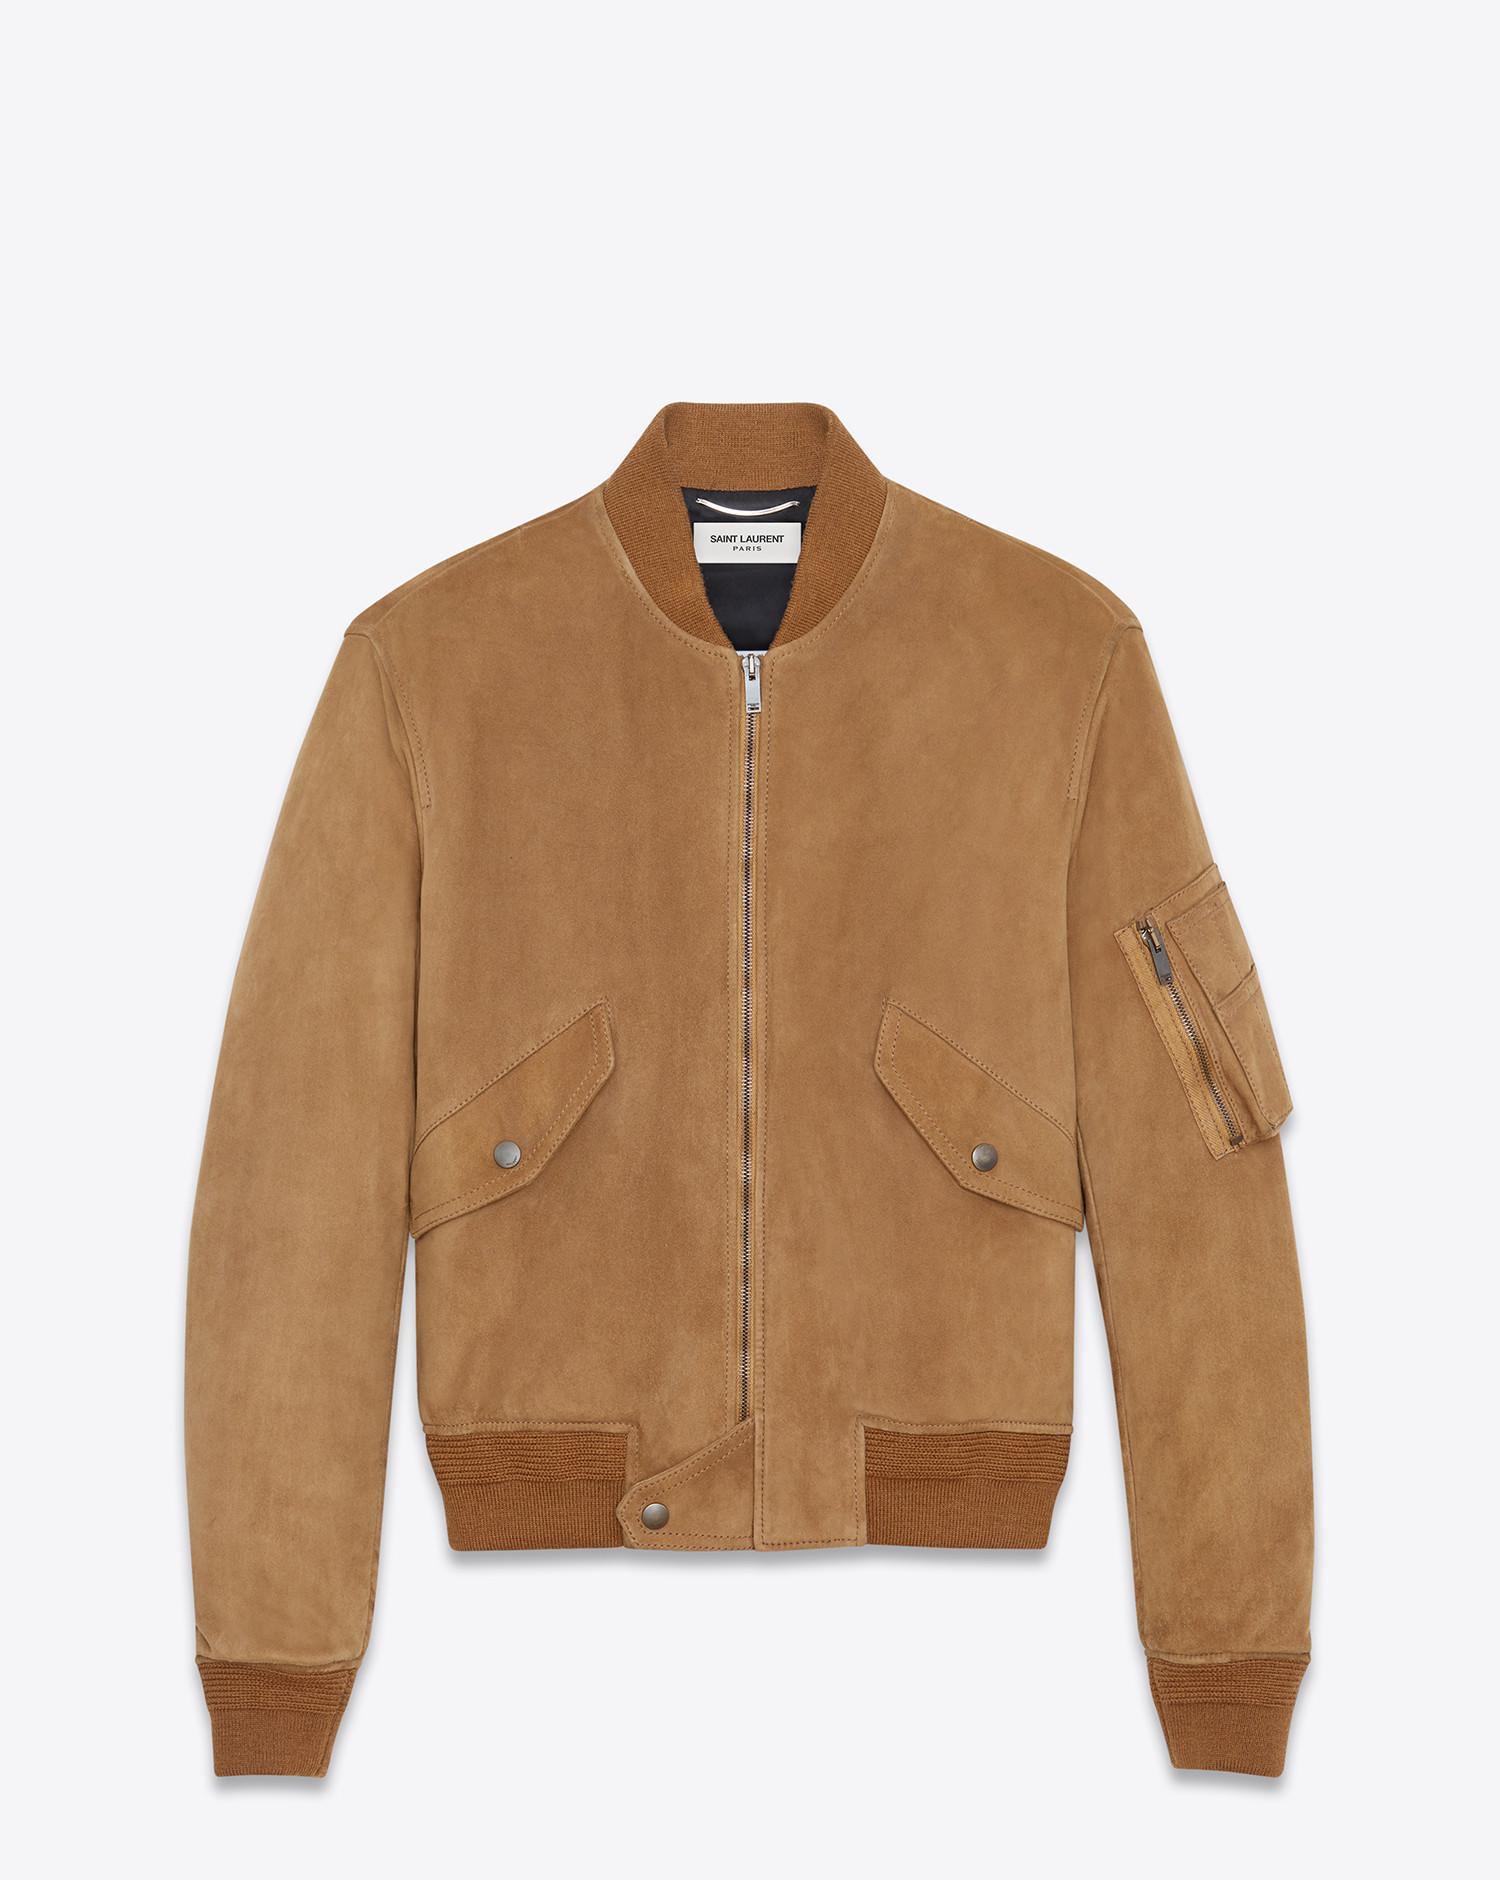 e3ee58437f6 Lyst - Saint Laurent Leather Jacket in Brown for Men